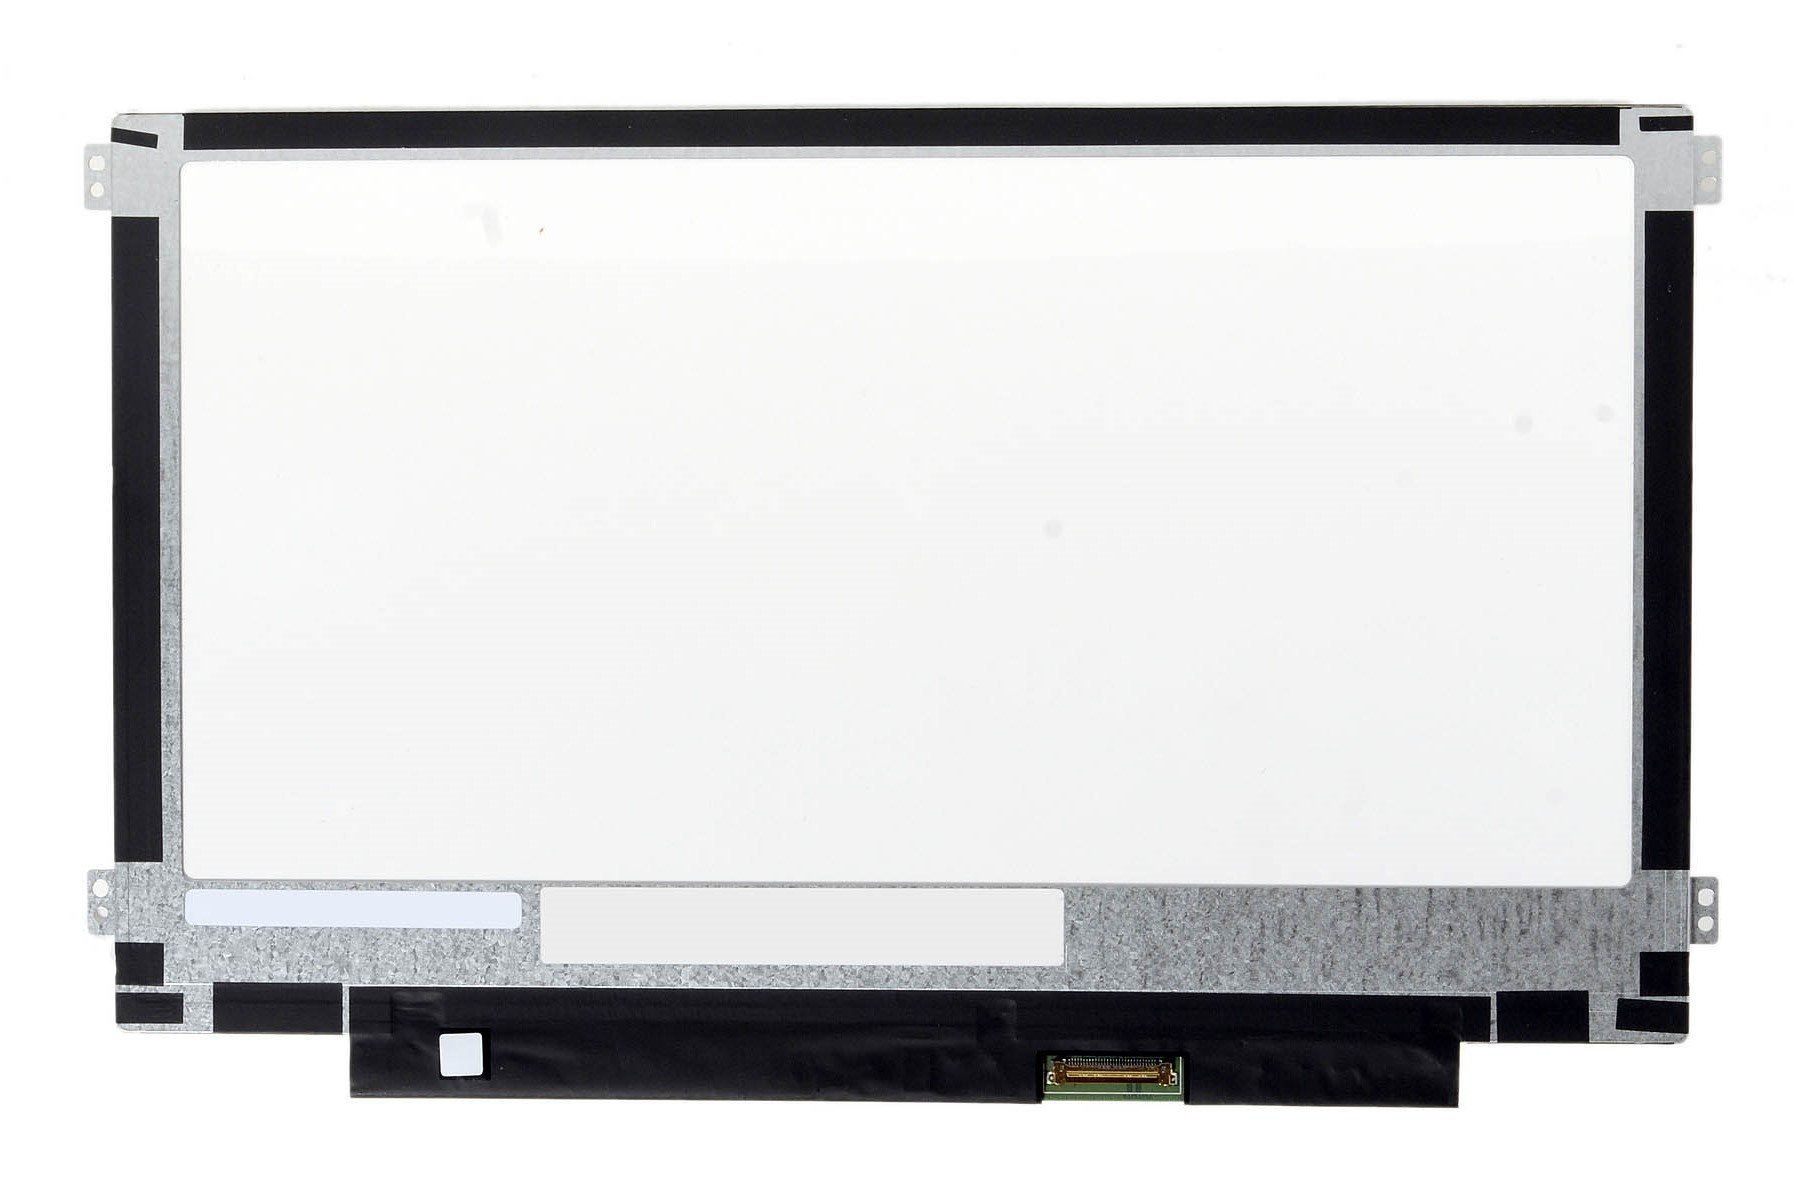 Samsung Chromebook 2 Xe500c12 Replacement LAPTOP LCD Screen 11.6'' WXGA HD LED DIODE (Substitute Replacement LCD Screen Only. Not a Laptop ) (XE500C12-K01US B116XTN01.0 SIDE CONNECTORS)